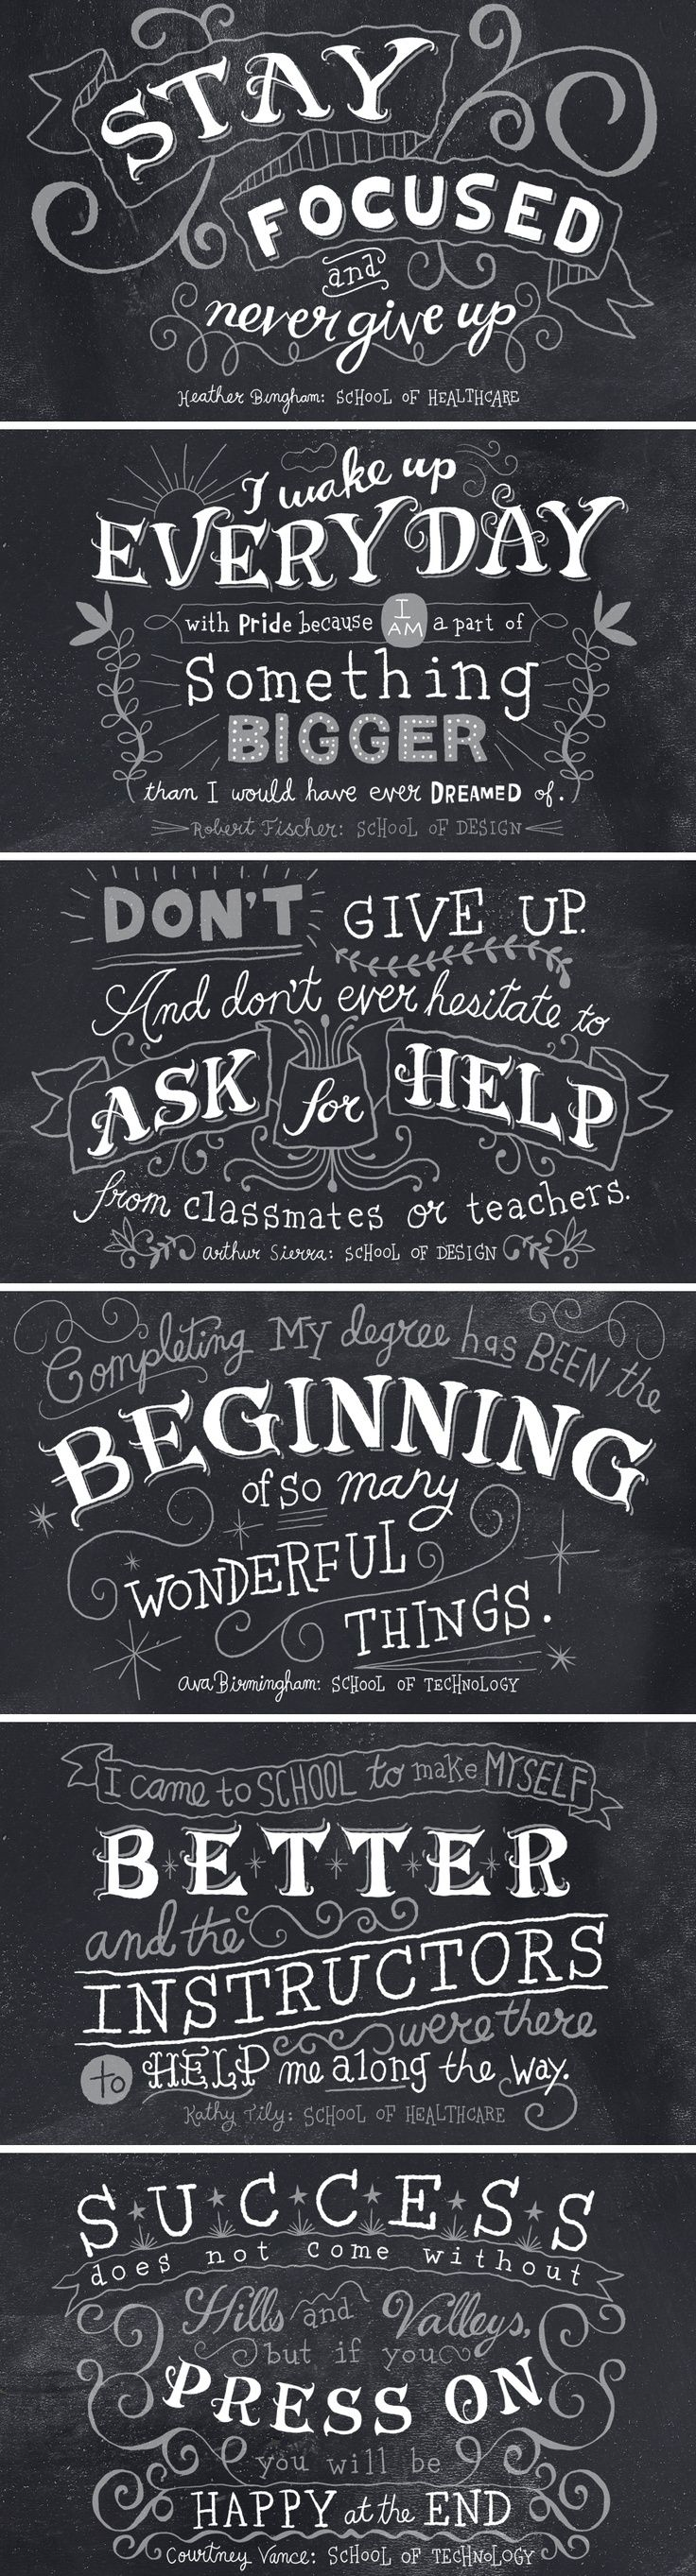 Stay focused, never give up.  Wake up every day with pride...  (Meaningful inspiring quotes) LOVE CHALKBOARD LETTERING! <3 Seriously, if you're like me, and you love chalkboard typography, you should definitely get even more Pins from my Lettering Board - go ahead, get inspired by all the chalkboard typography Pins you can ;) Enjoy!